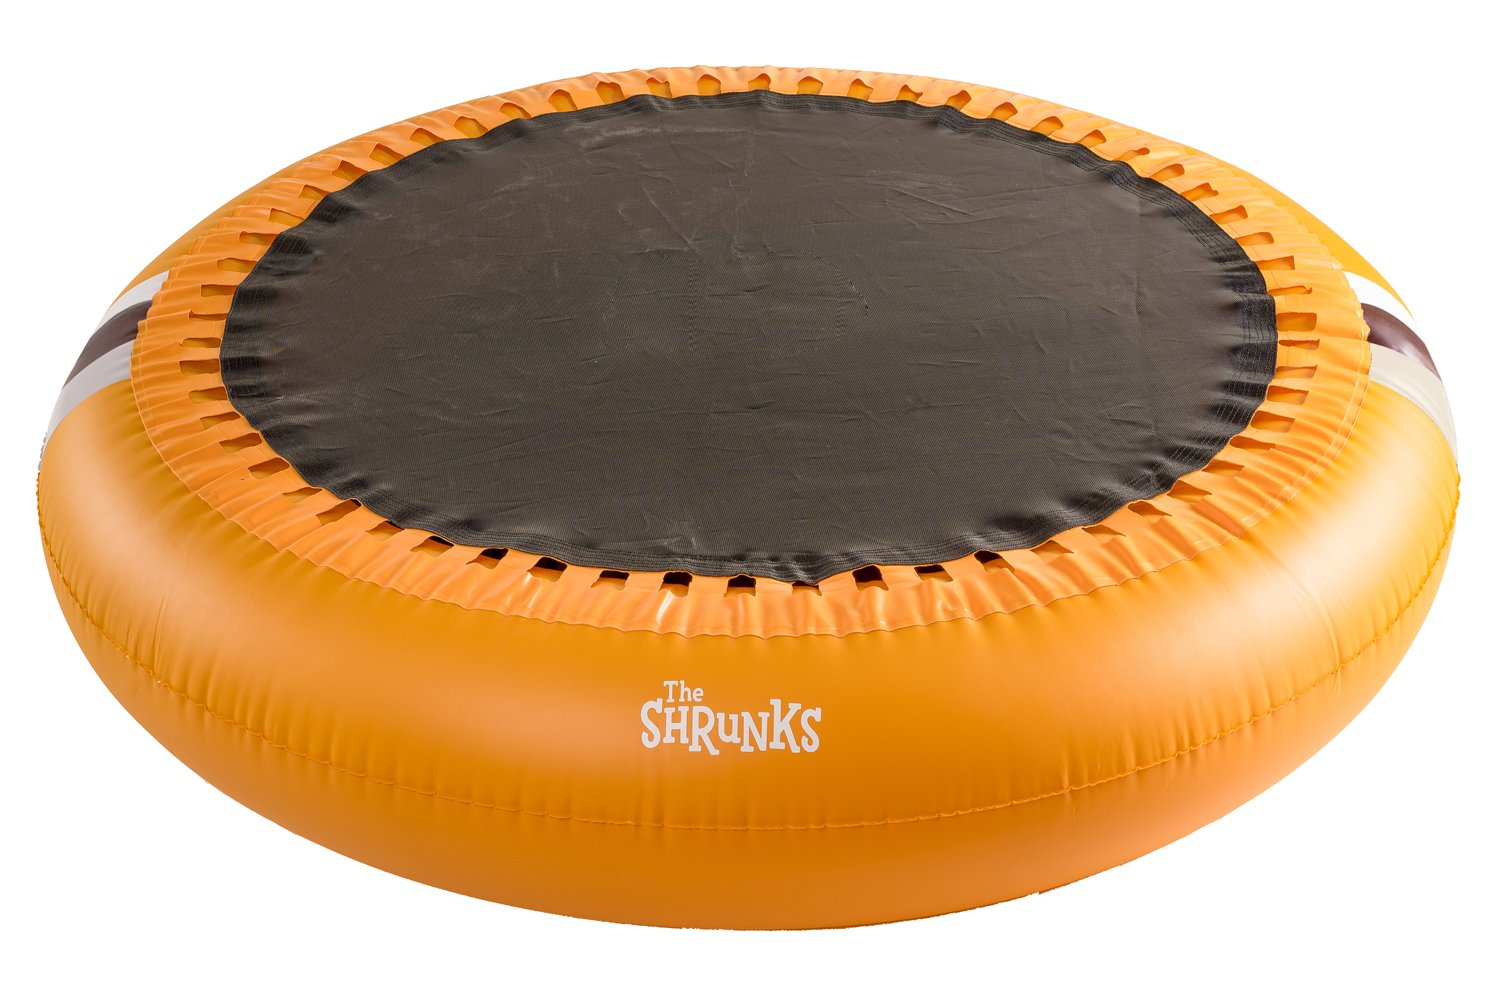 The Shrunks Inflatable 2-in-1 Safety Bouncer Pool Portable Indoor or Outdoor Use with ''SOFT'' bounce for Toddlers Safety, Orange, 72 x 72 inches